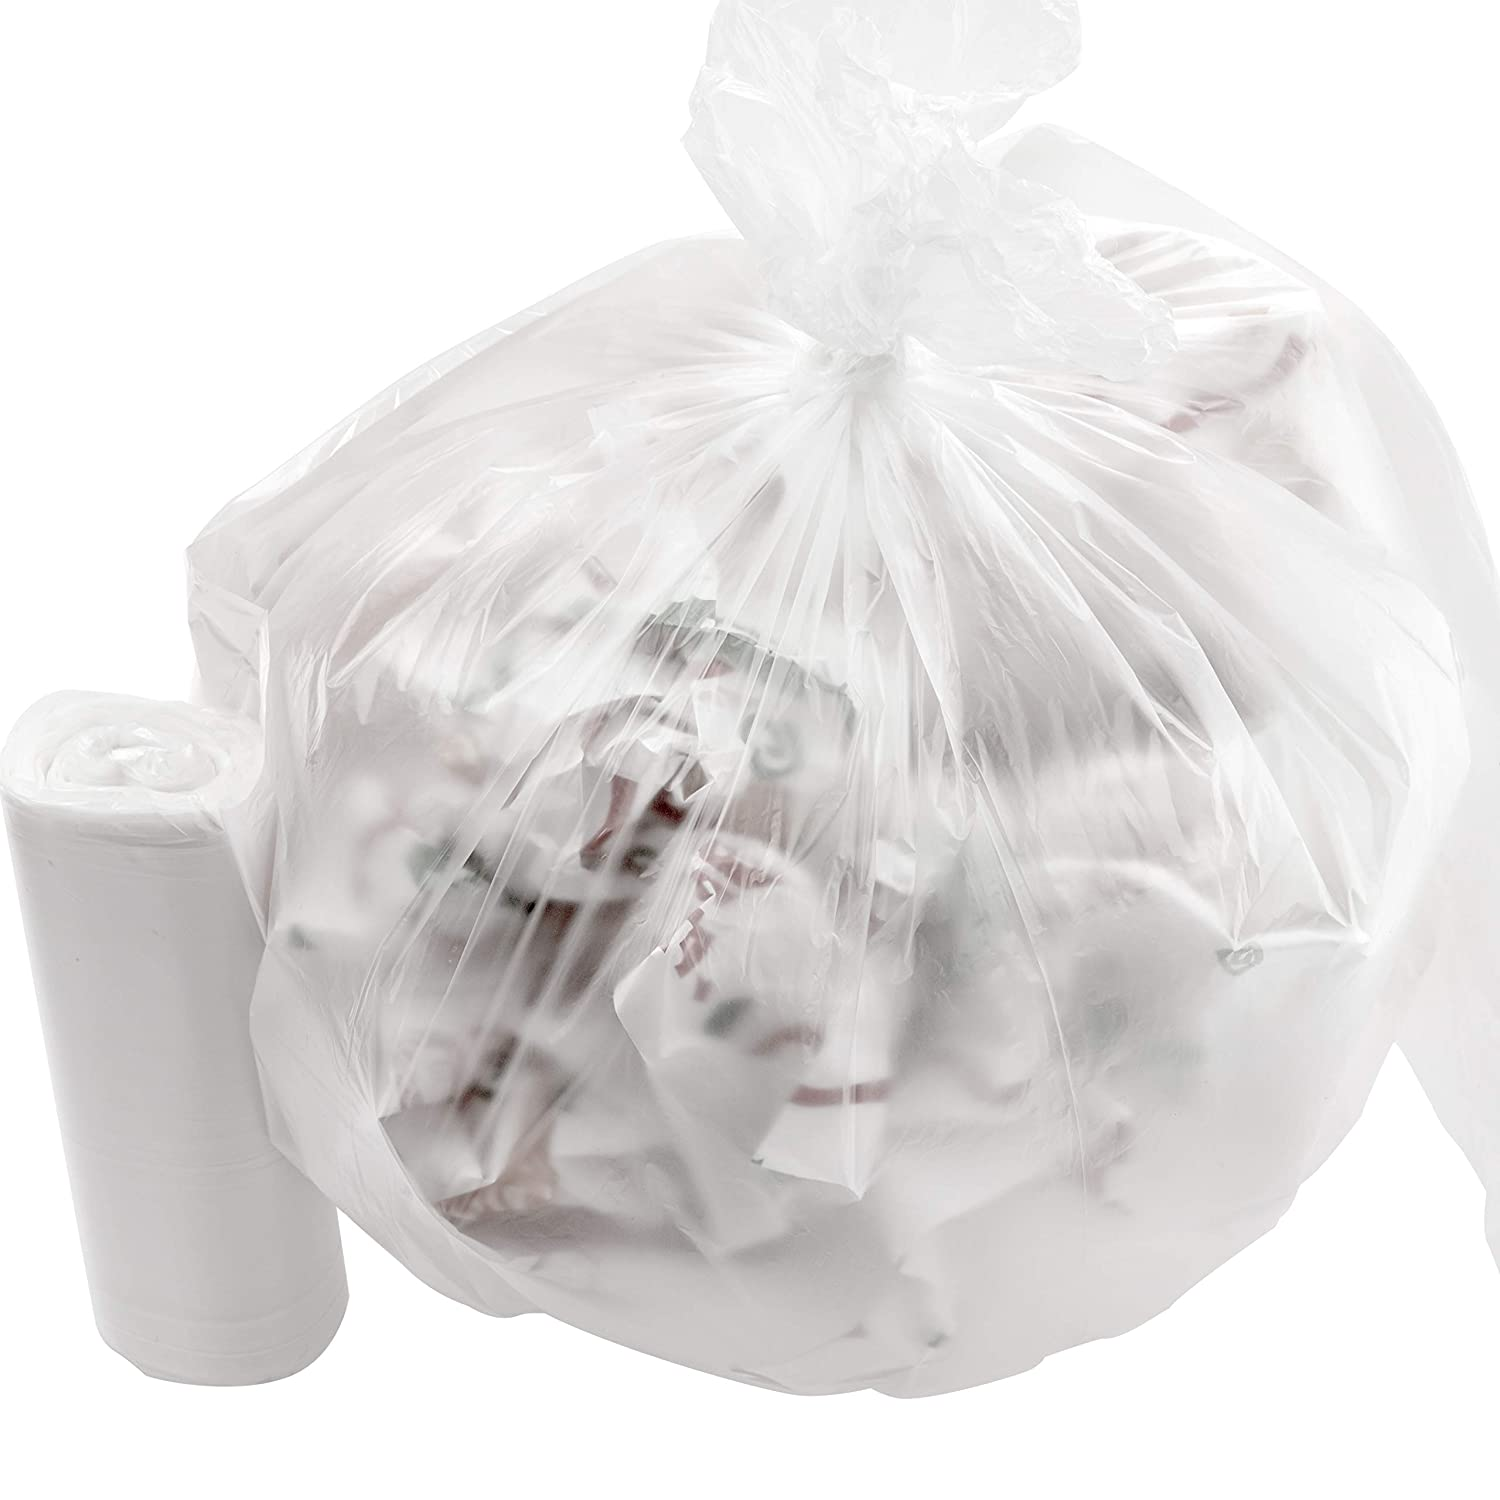 Leak-Proof Clear 4 Gallon Trash Can Liners 250Pk. Small Coreless Plastic Garbage Bags Perfect for Bathroom Wastebaskets, Kitchens, Offices or Recycling Bins. Great for Kitty Litter or Diaper Disposal.